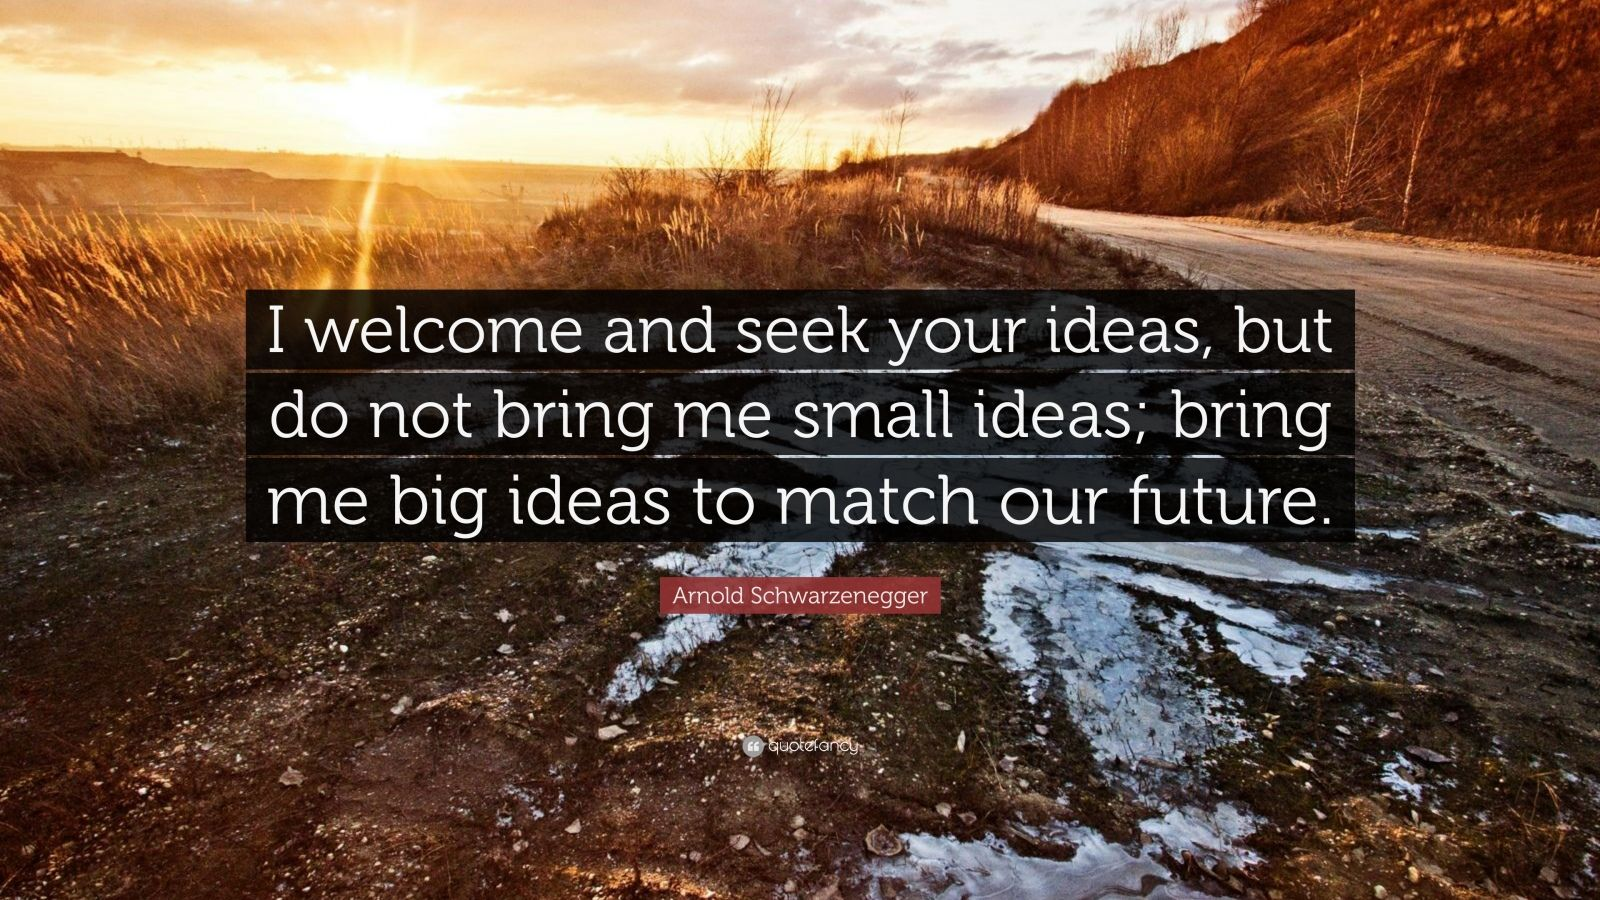 """Arnold Schwarzenegger Quote: """"I welcome and seek your ideas, but do not bring me small ideas; bring me big ideas to match our future."""""""